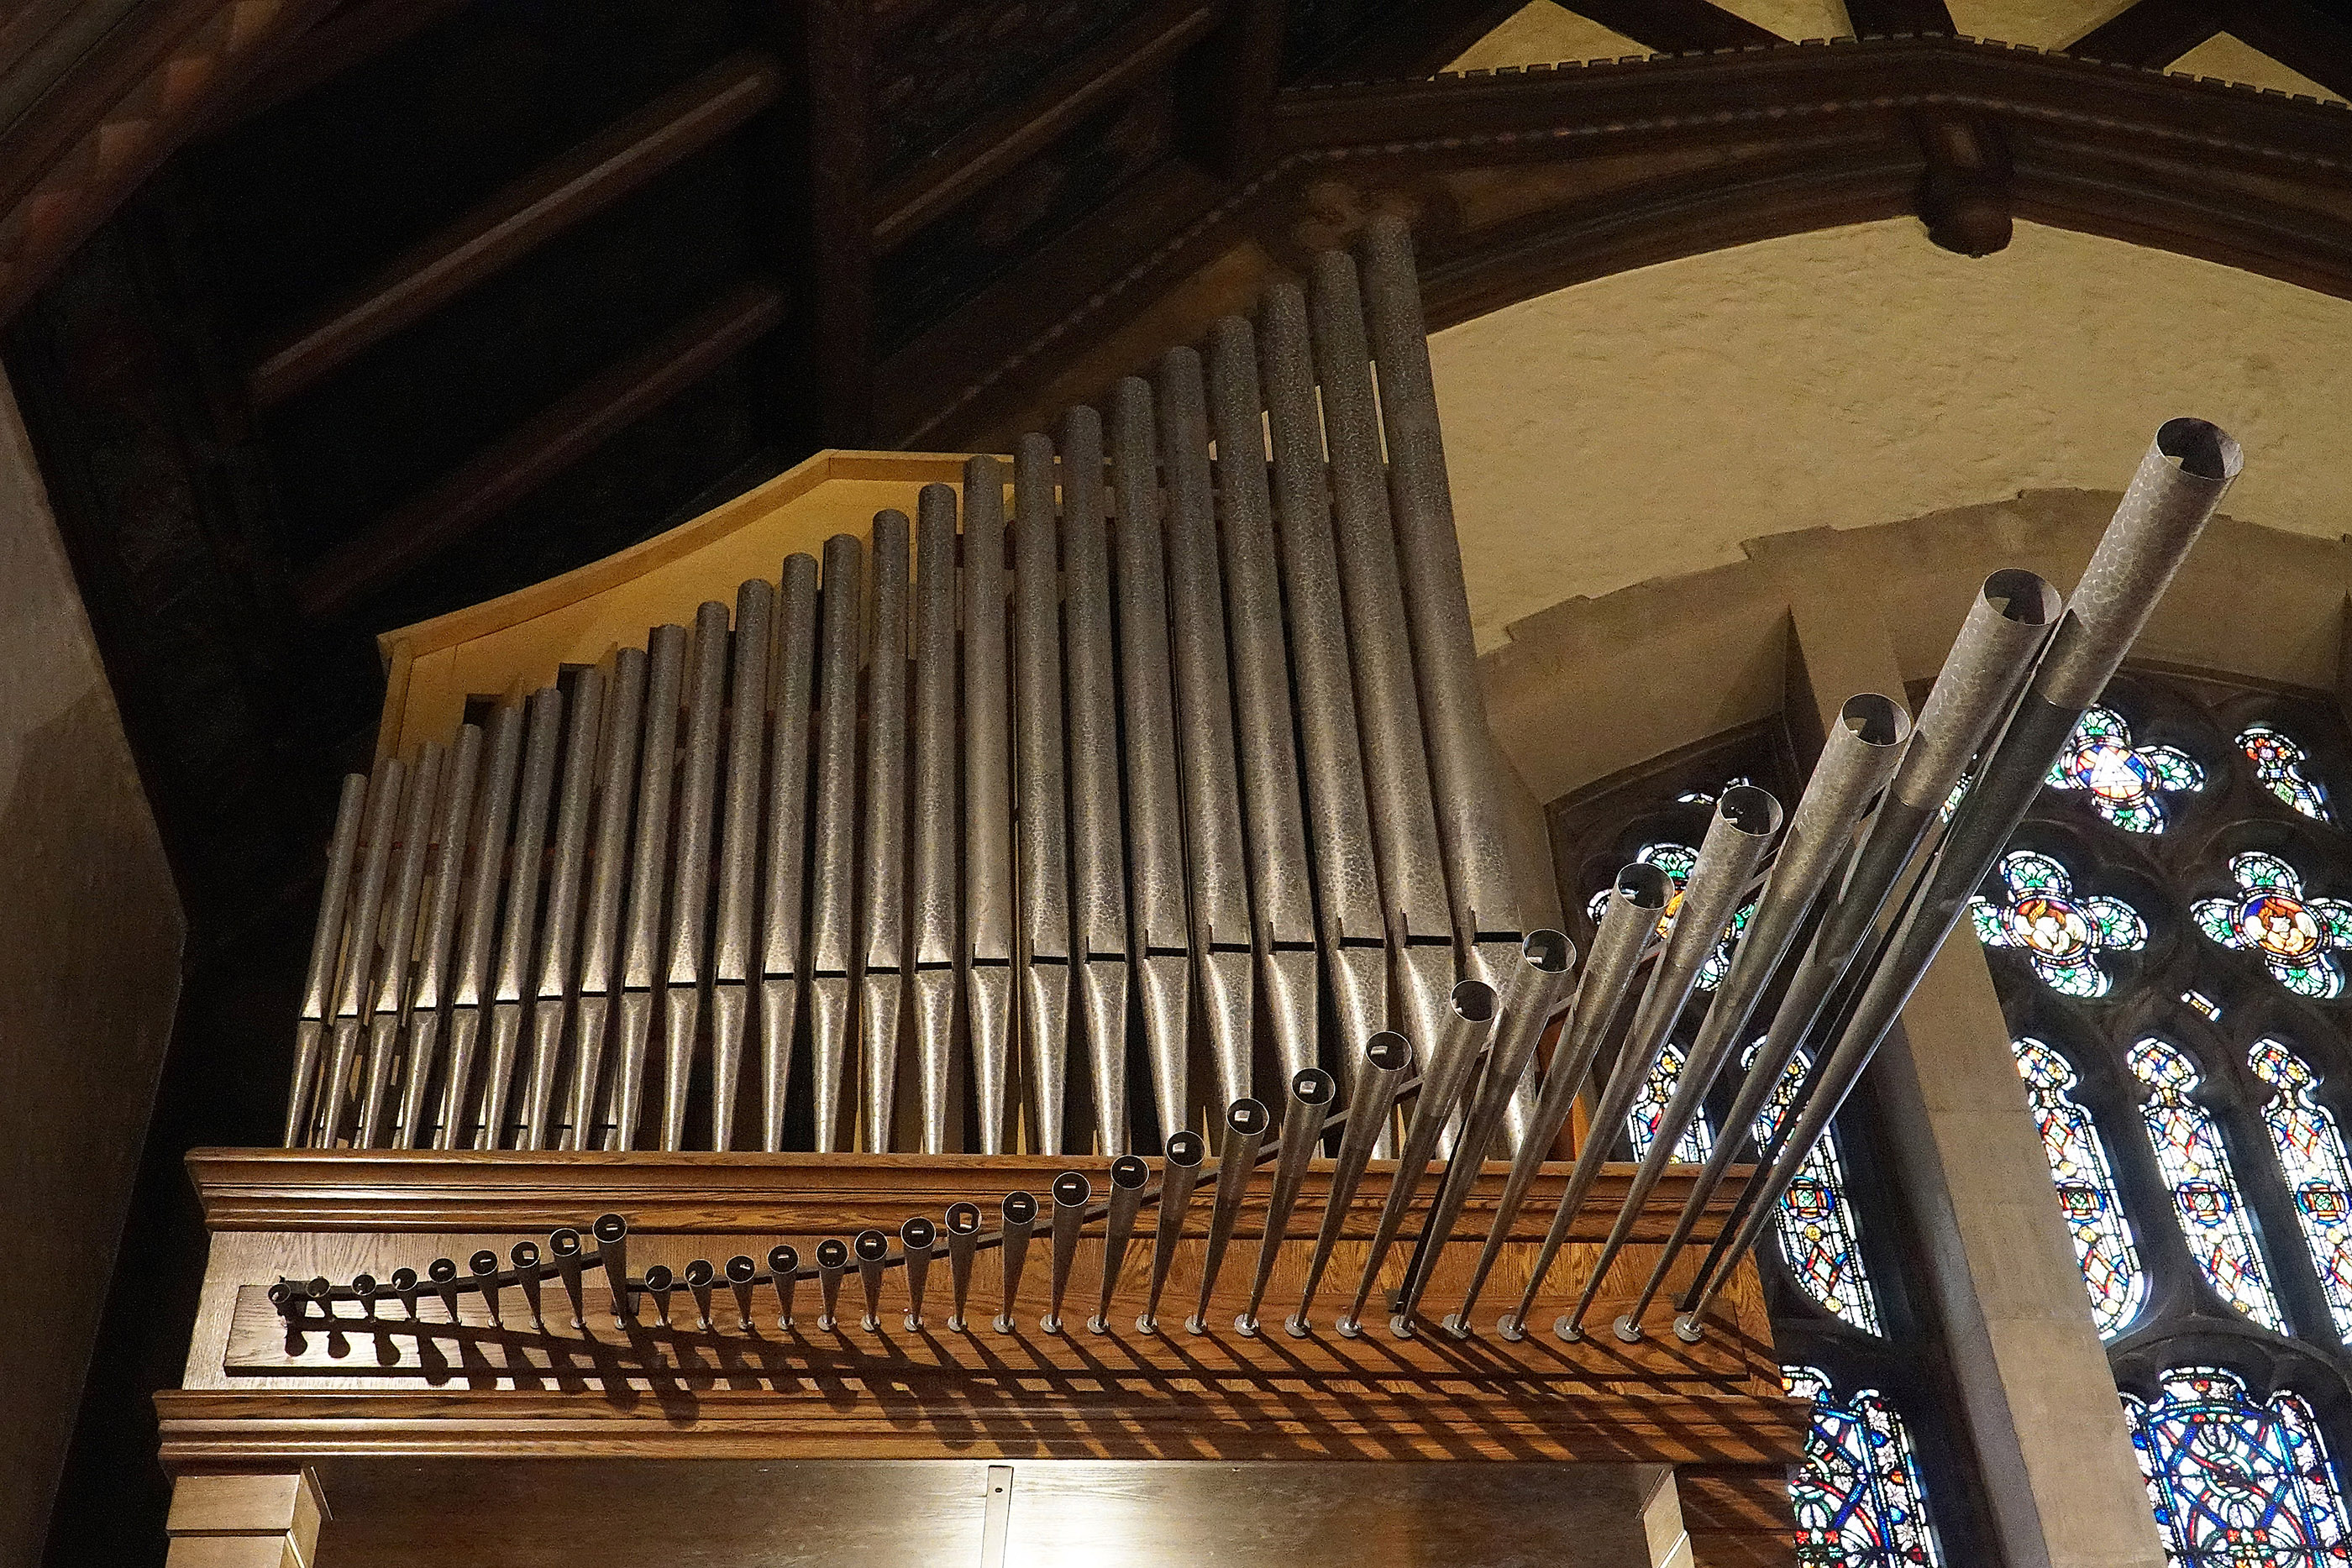 DSC09548 Balcony Organ Pipes 2019-11-14.